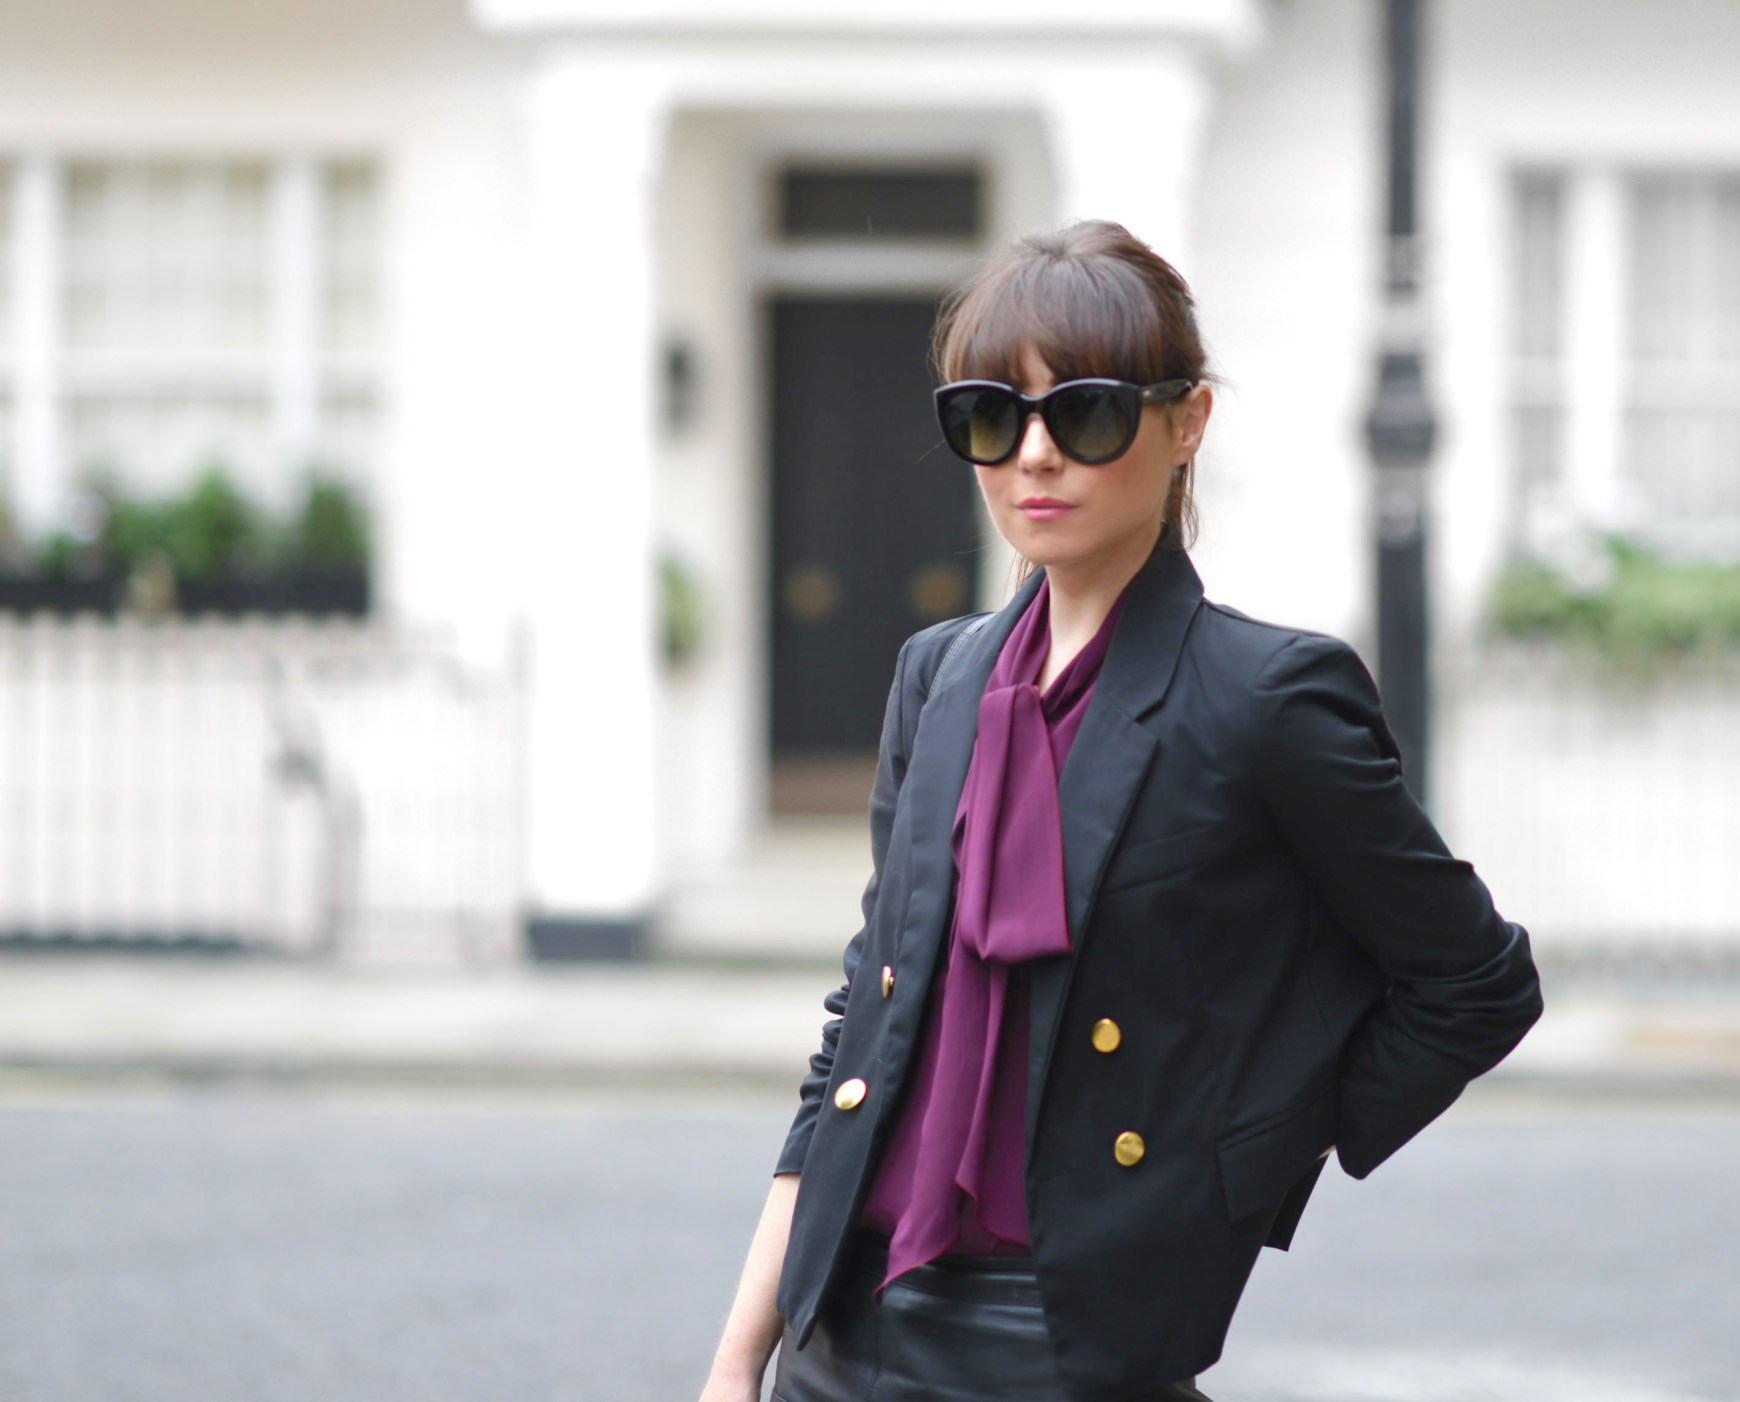 Purple Feminine Pussy Bow Blouse and Blazer - Streetstyle